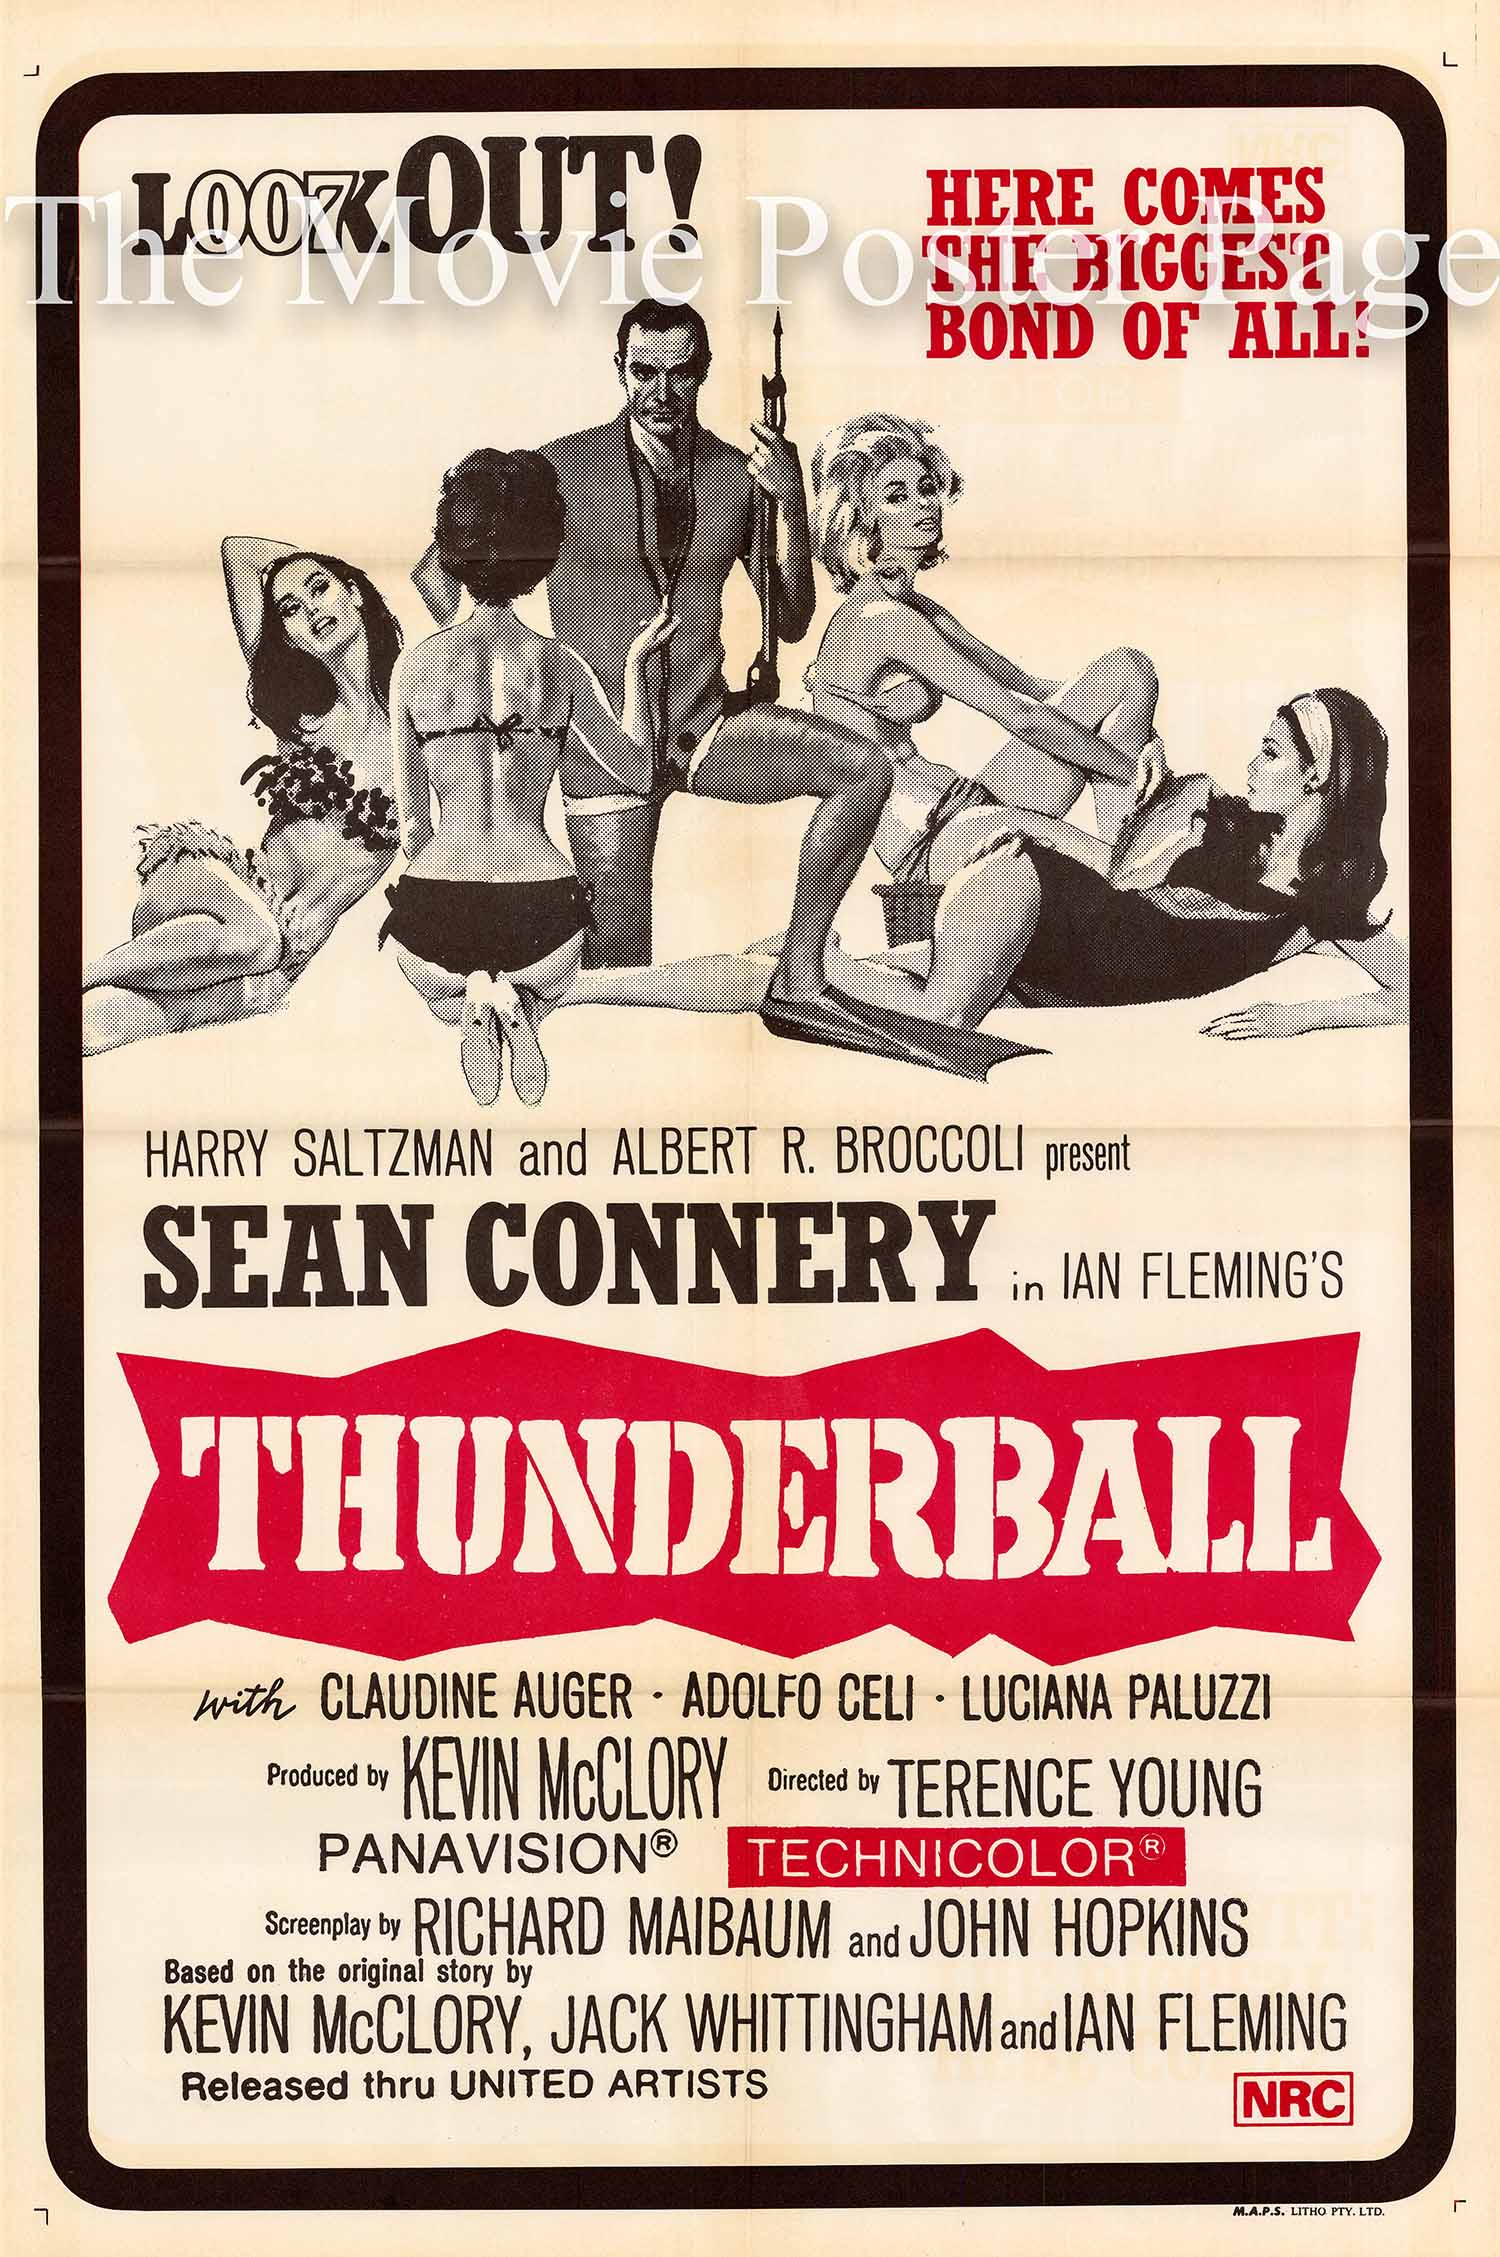 Pictured is an Australian duotone one-sheet printed in the early 1970s to promote a rerelase of the 1965 Terence Young film Thunderball starring Sean Connery as James Bond.